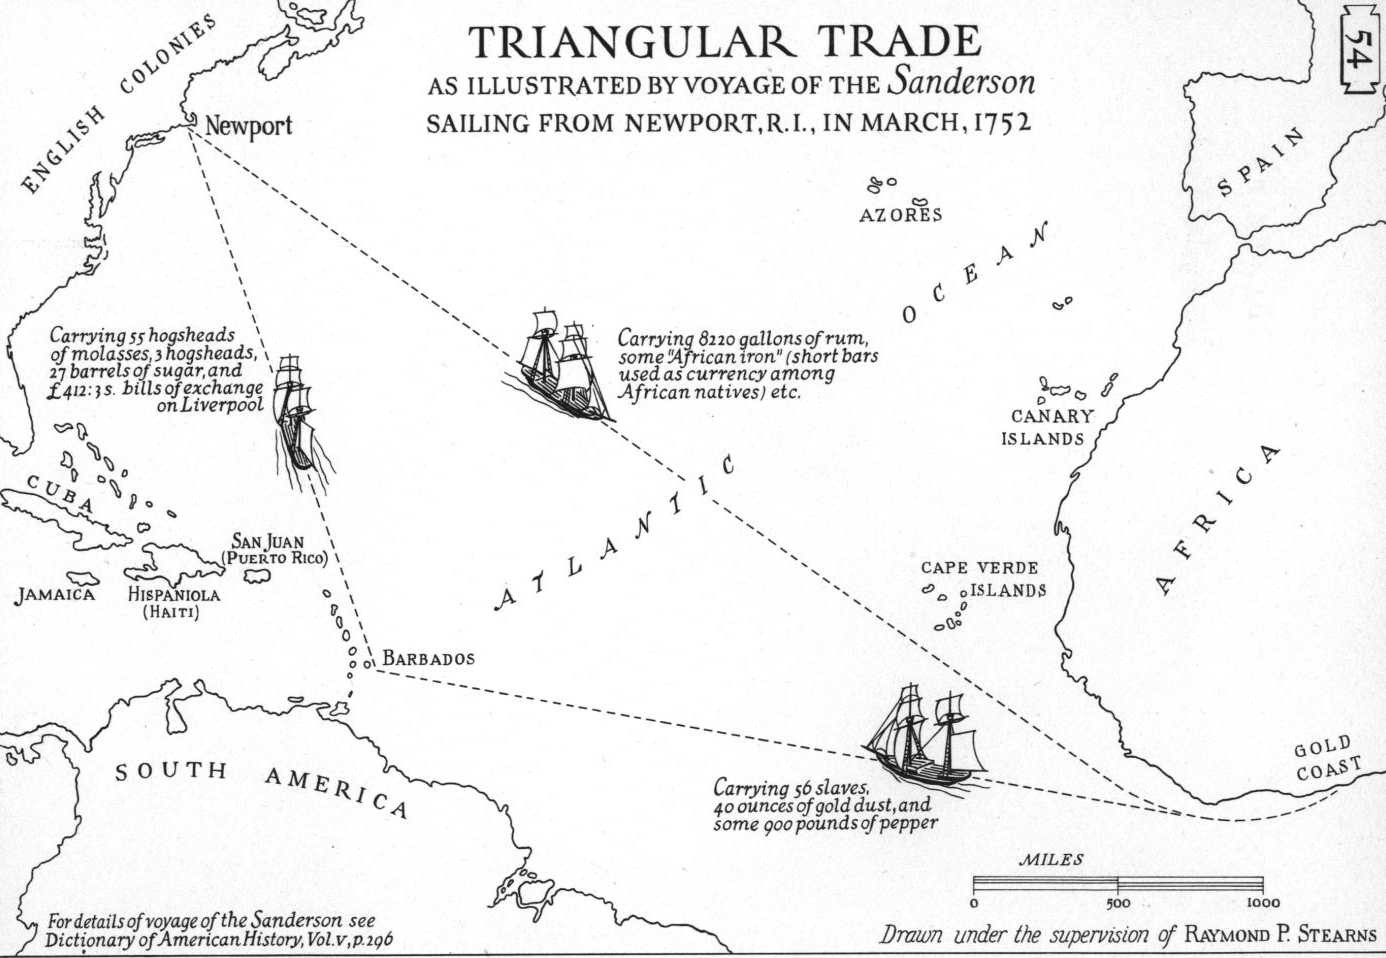 Exemplar map of the Triangular Trade